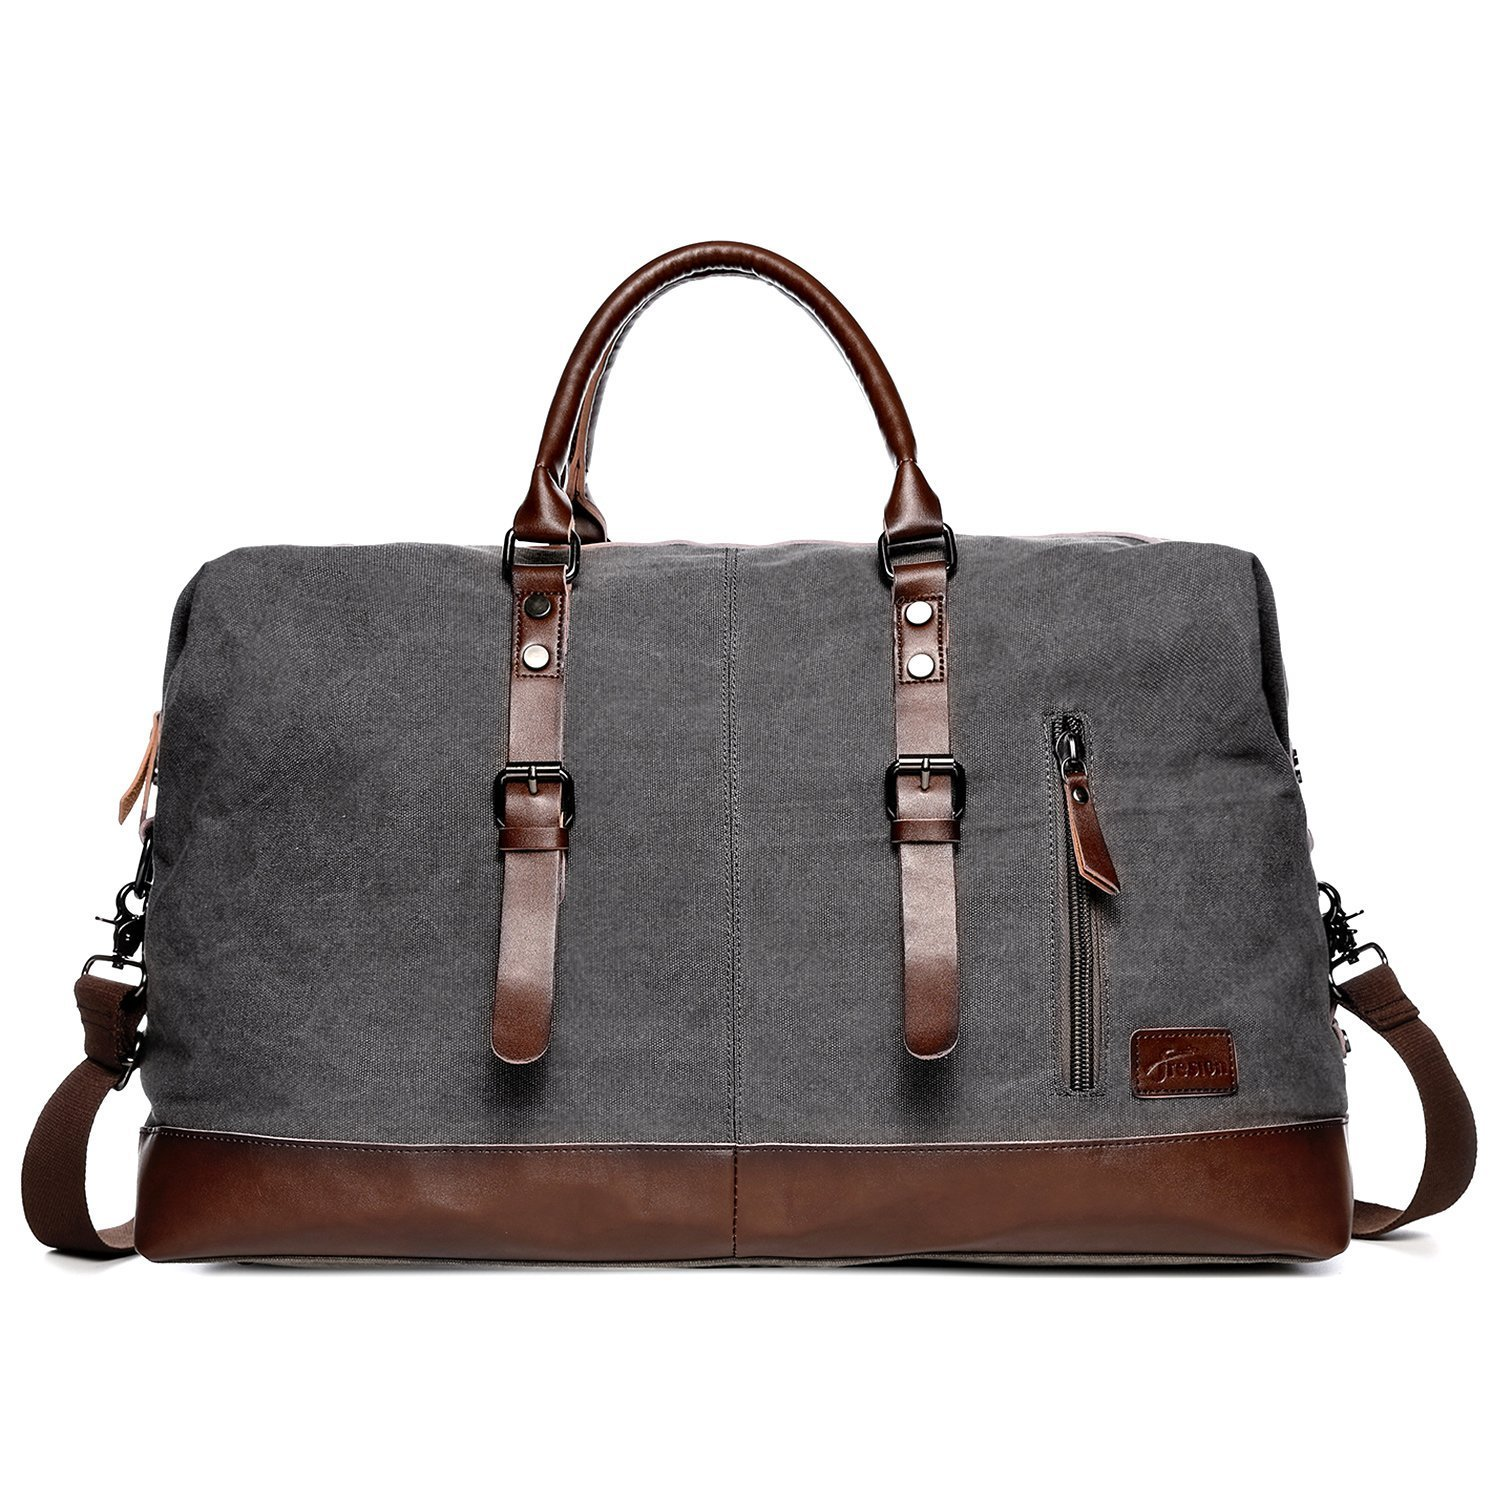 Sports Holdall Weekend Travel Duffel Bag,Fresion Portable Canvas Handbag Carry on Overnight Bags with Genuine Leather (Grey)